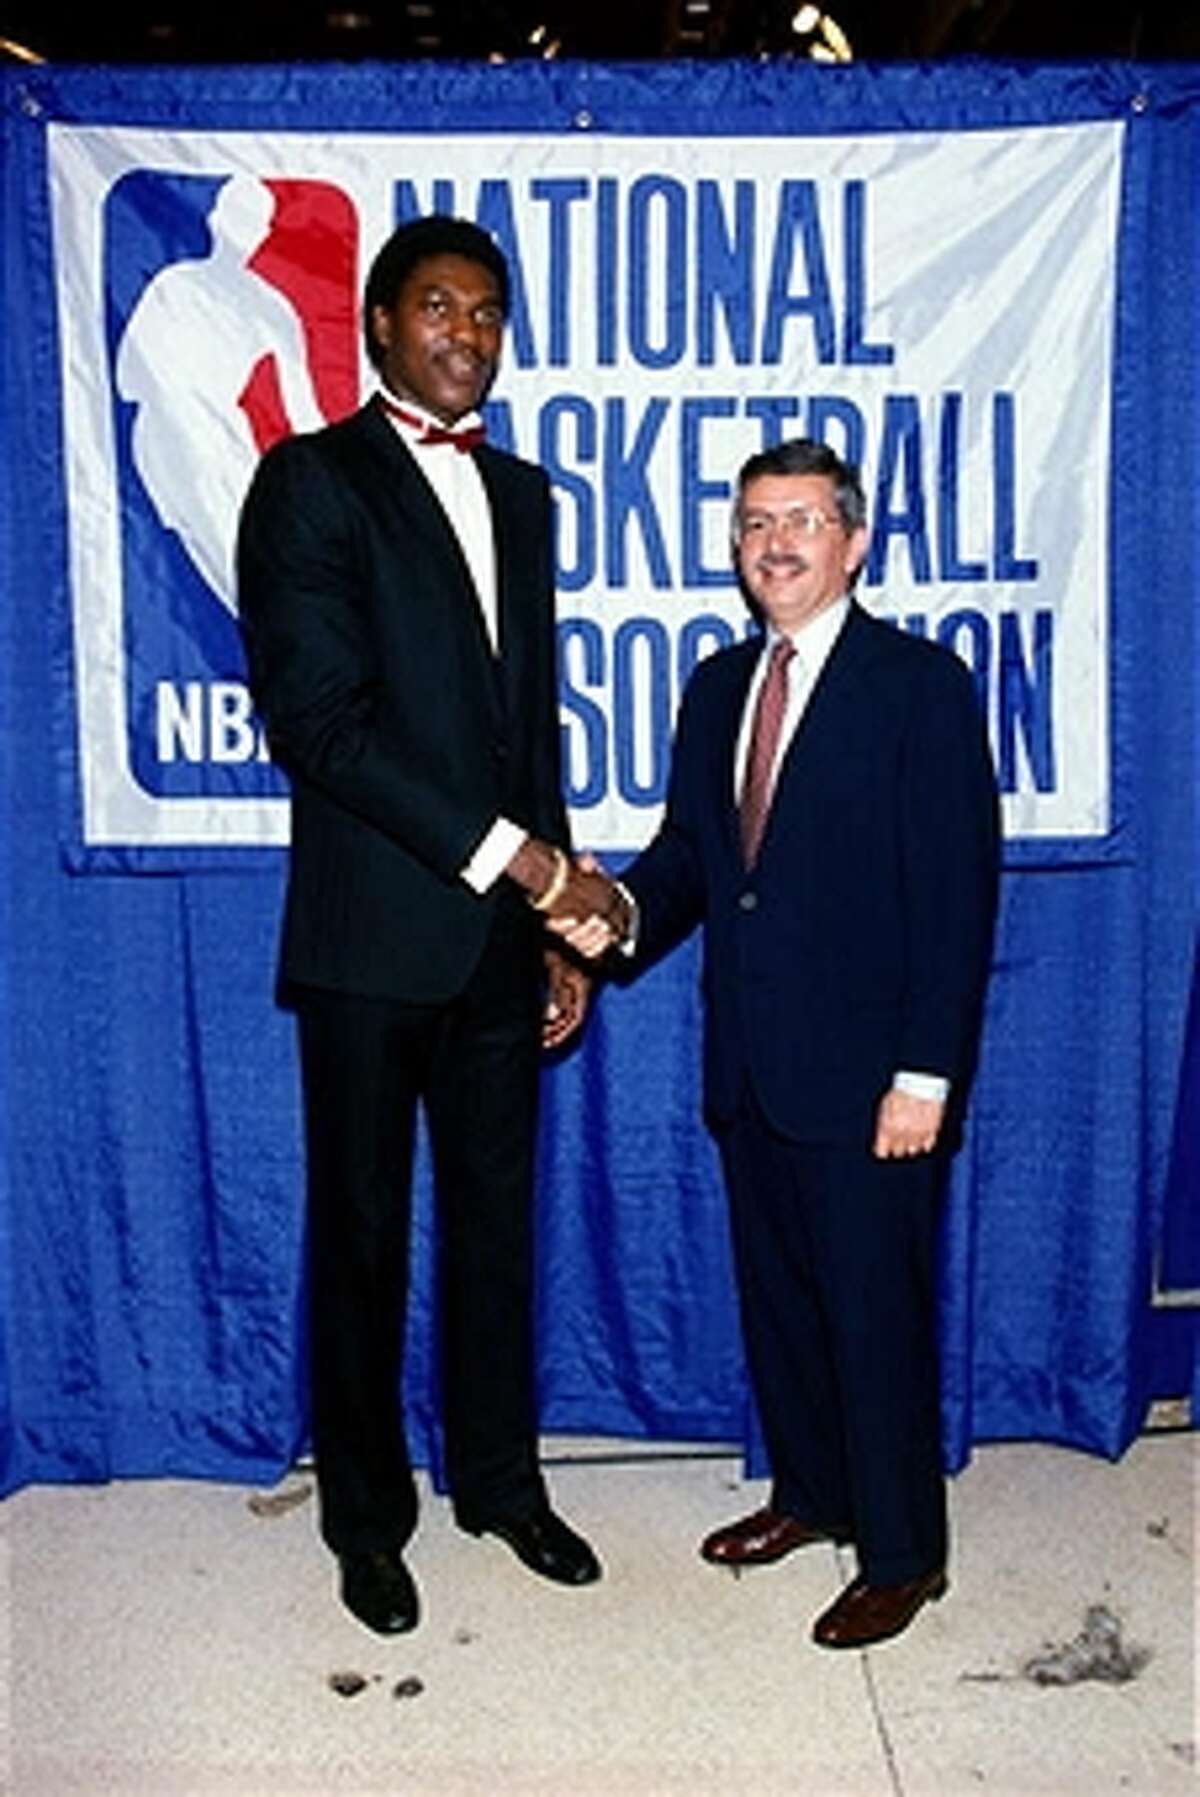 1984: NBA commissioner David Stern congratulates Akeem Olajuwon after being drafted first overall by the Houston Rockets during the 1984 NBA Draft. (Photo by Noren Trotman/NBAE/Getty Images)